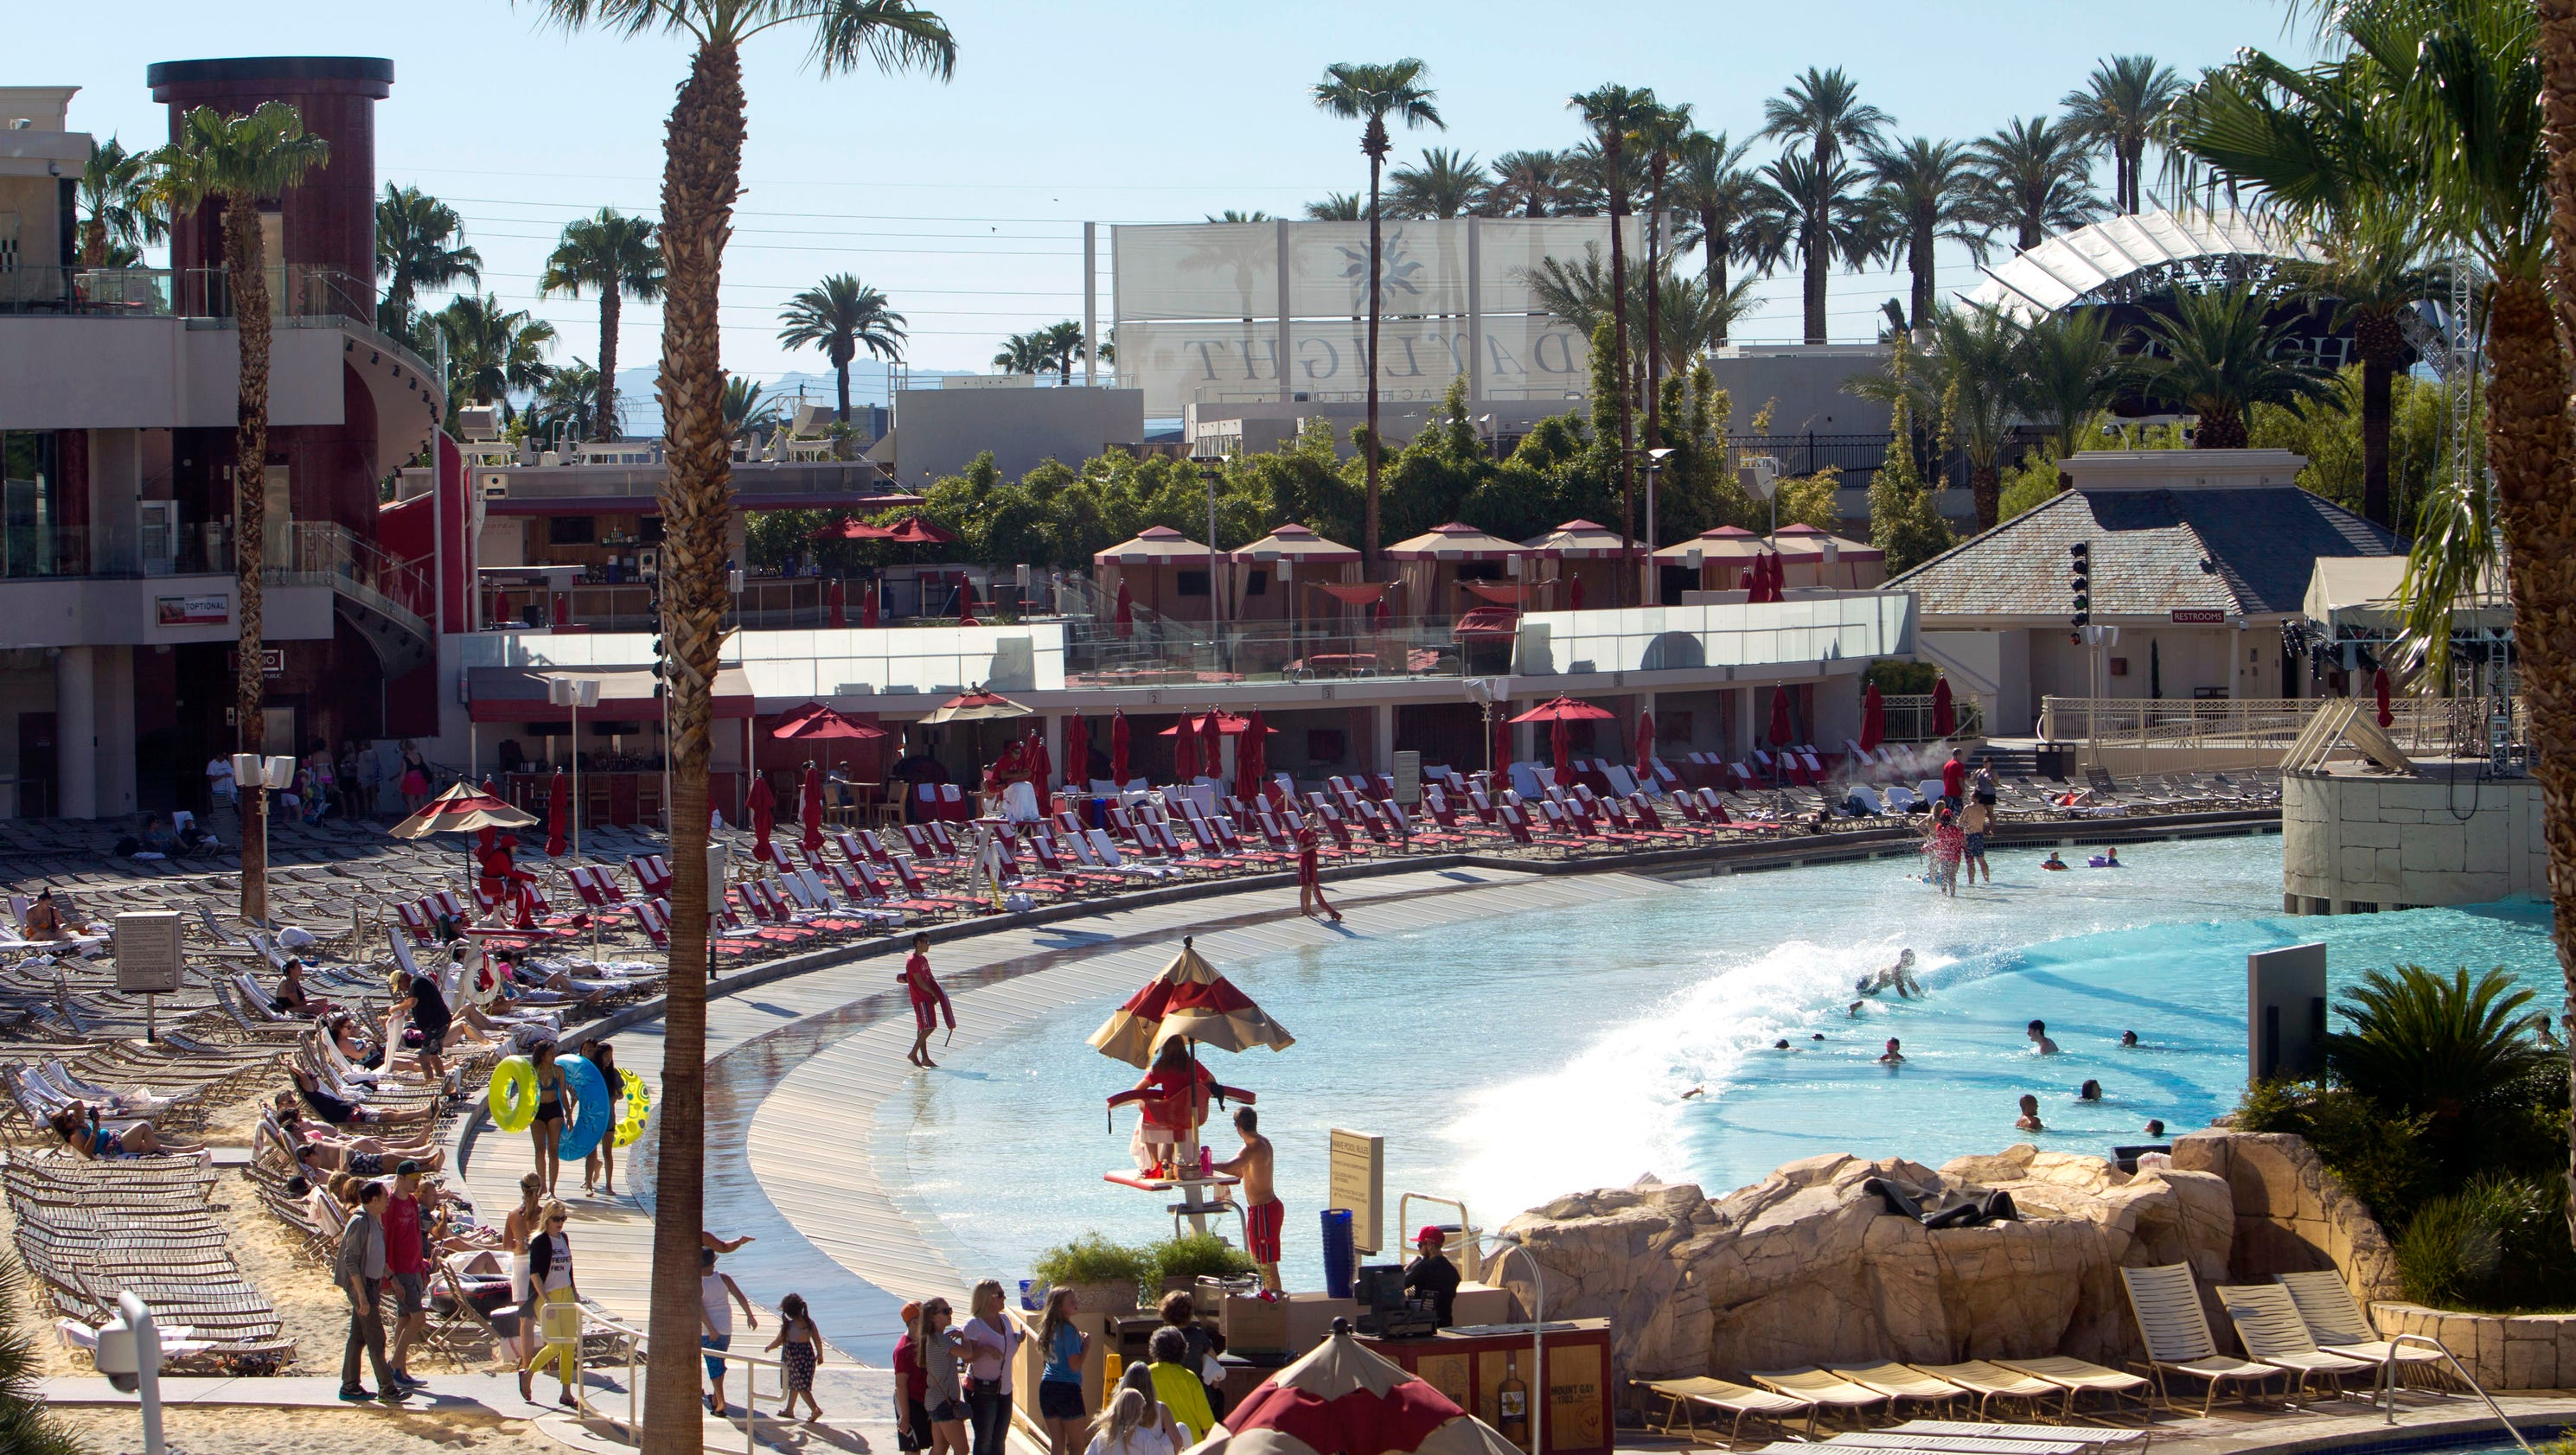 The Mandalay Bay pool area is set on 11 acres, with unique features such as: real sand, a wave pool, a comfortable beach side casino, and beach side concerts during the summer. Adding to the beach-like pool area at the Mandalay Bay are luxurious amenities like cabanas, bungalows, day beds, and villas to rent for that all-exclusive experience.